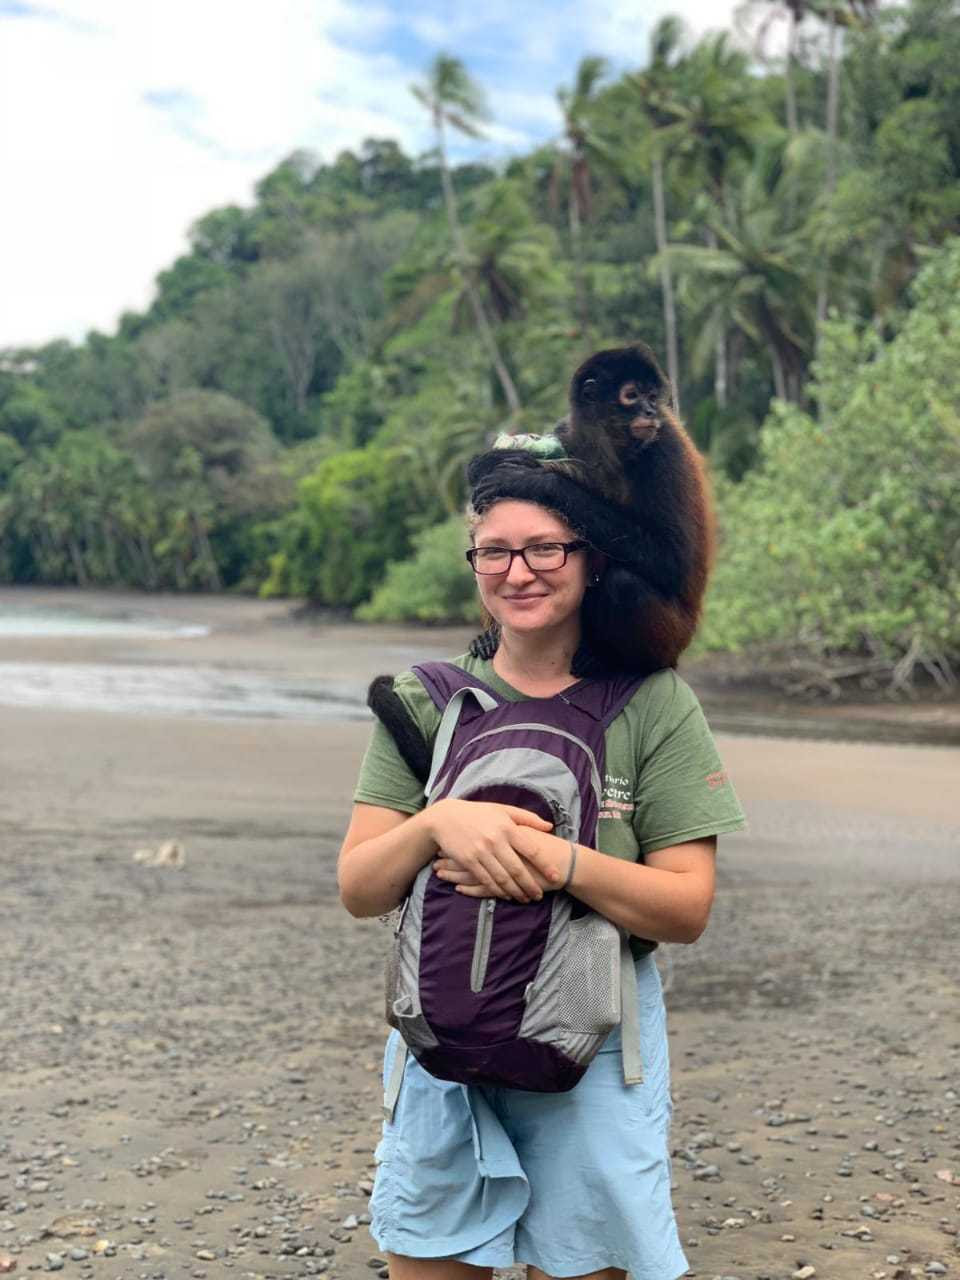 Young woman on beach with rainforest in background with spider monkey on her shoulders